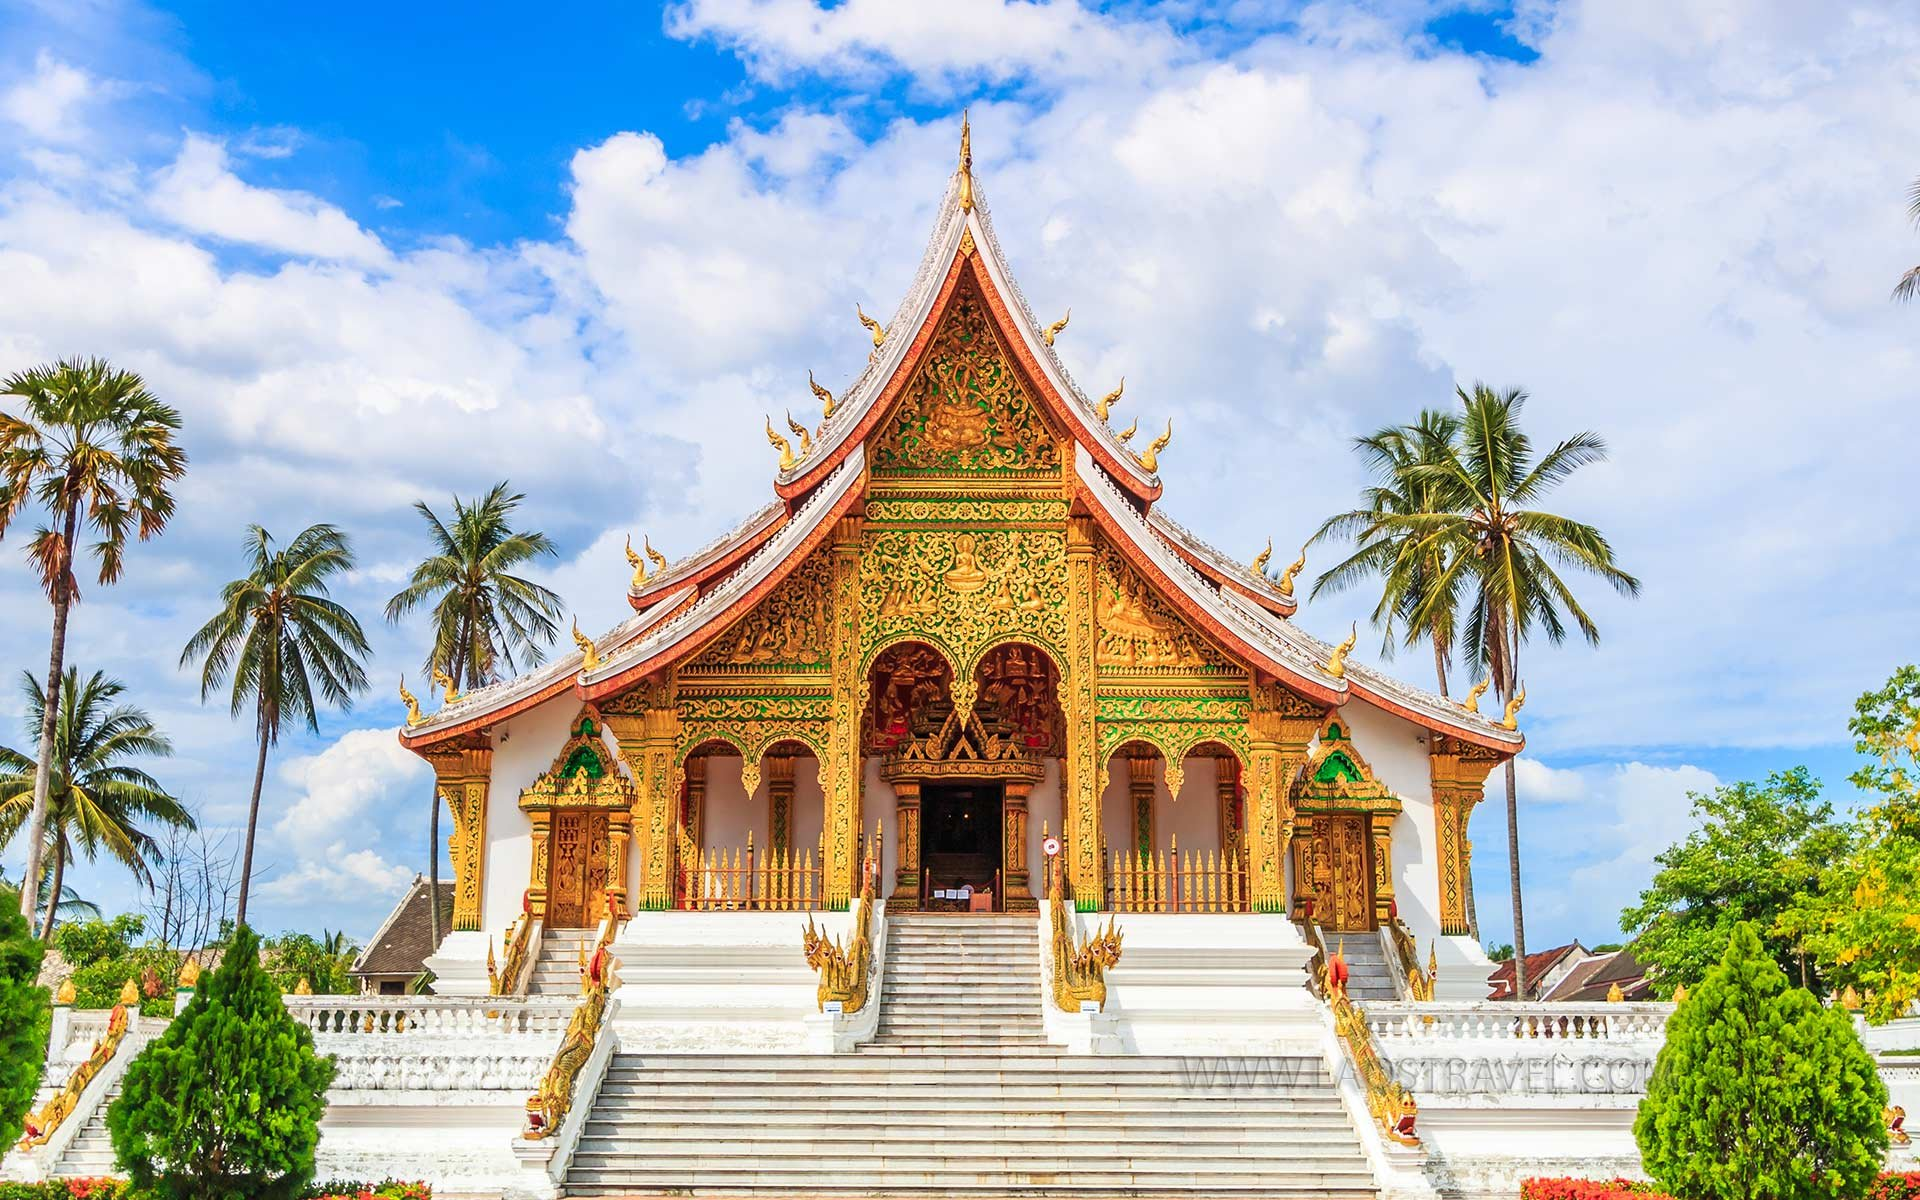 Promotion - Wonder of Luang Prabang - 4 days